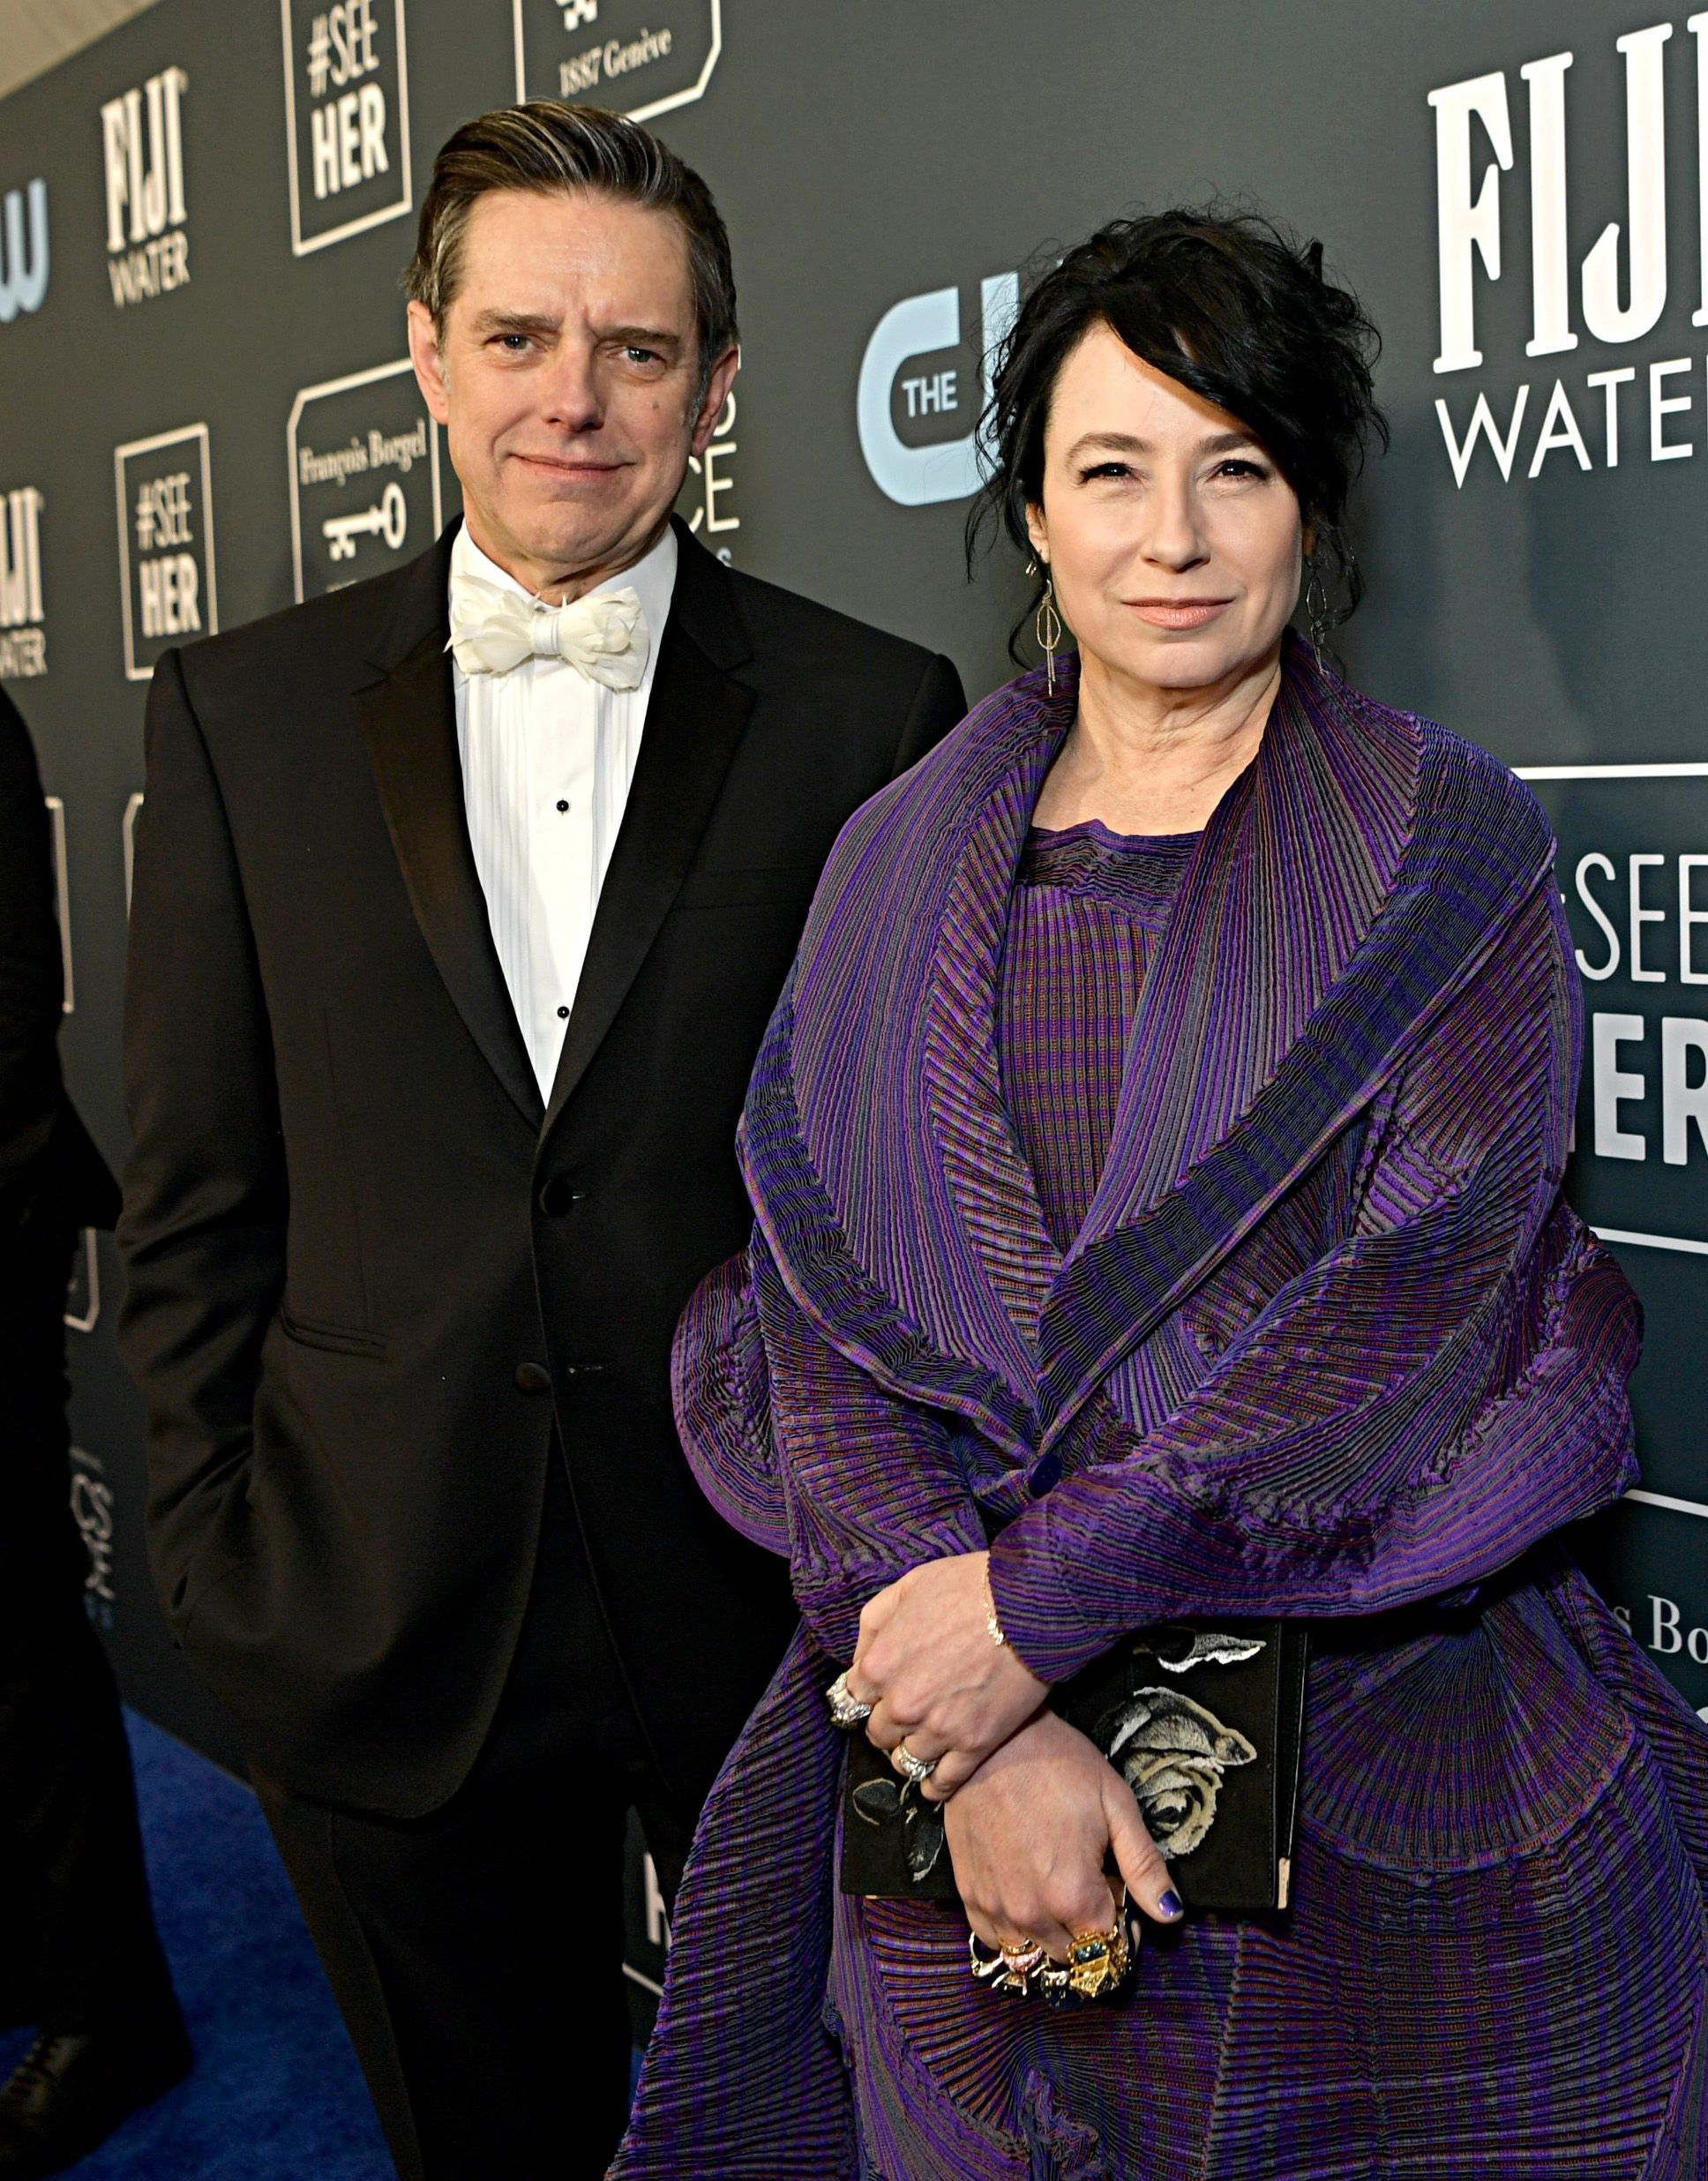 Daniel Palladino and Amy Sherman-Palladino at an event for The 25th Annual Critics' Choice Awards (2020)